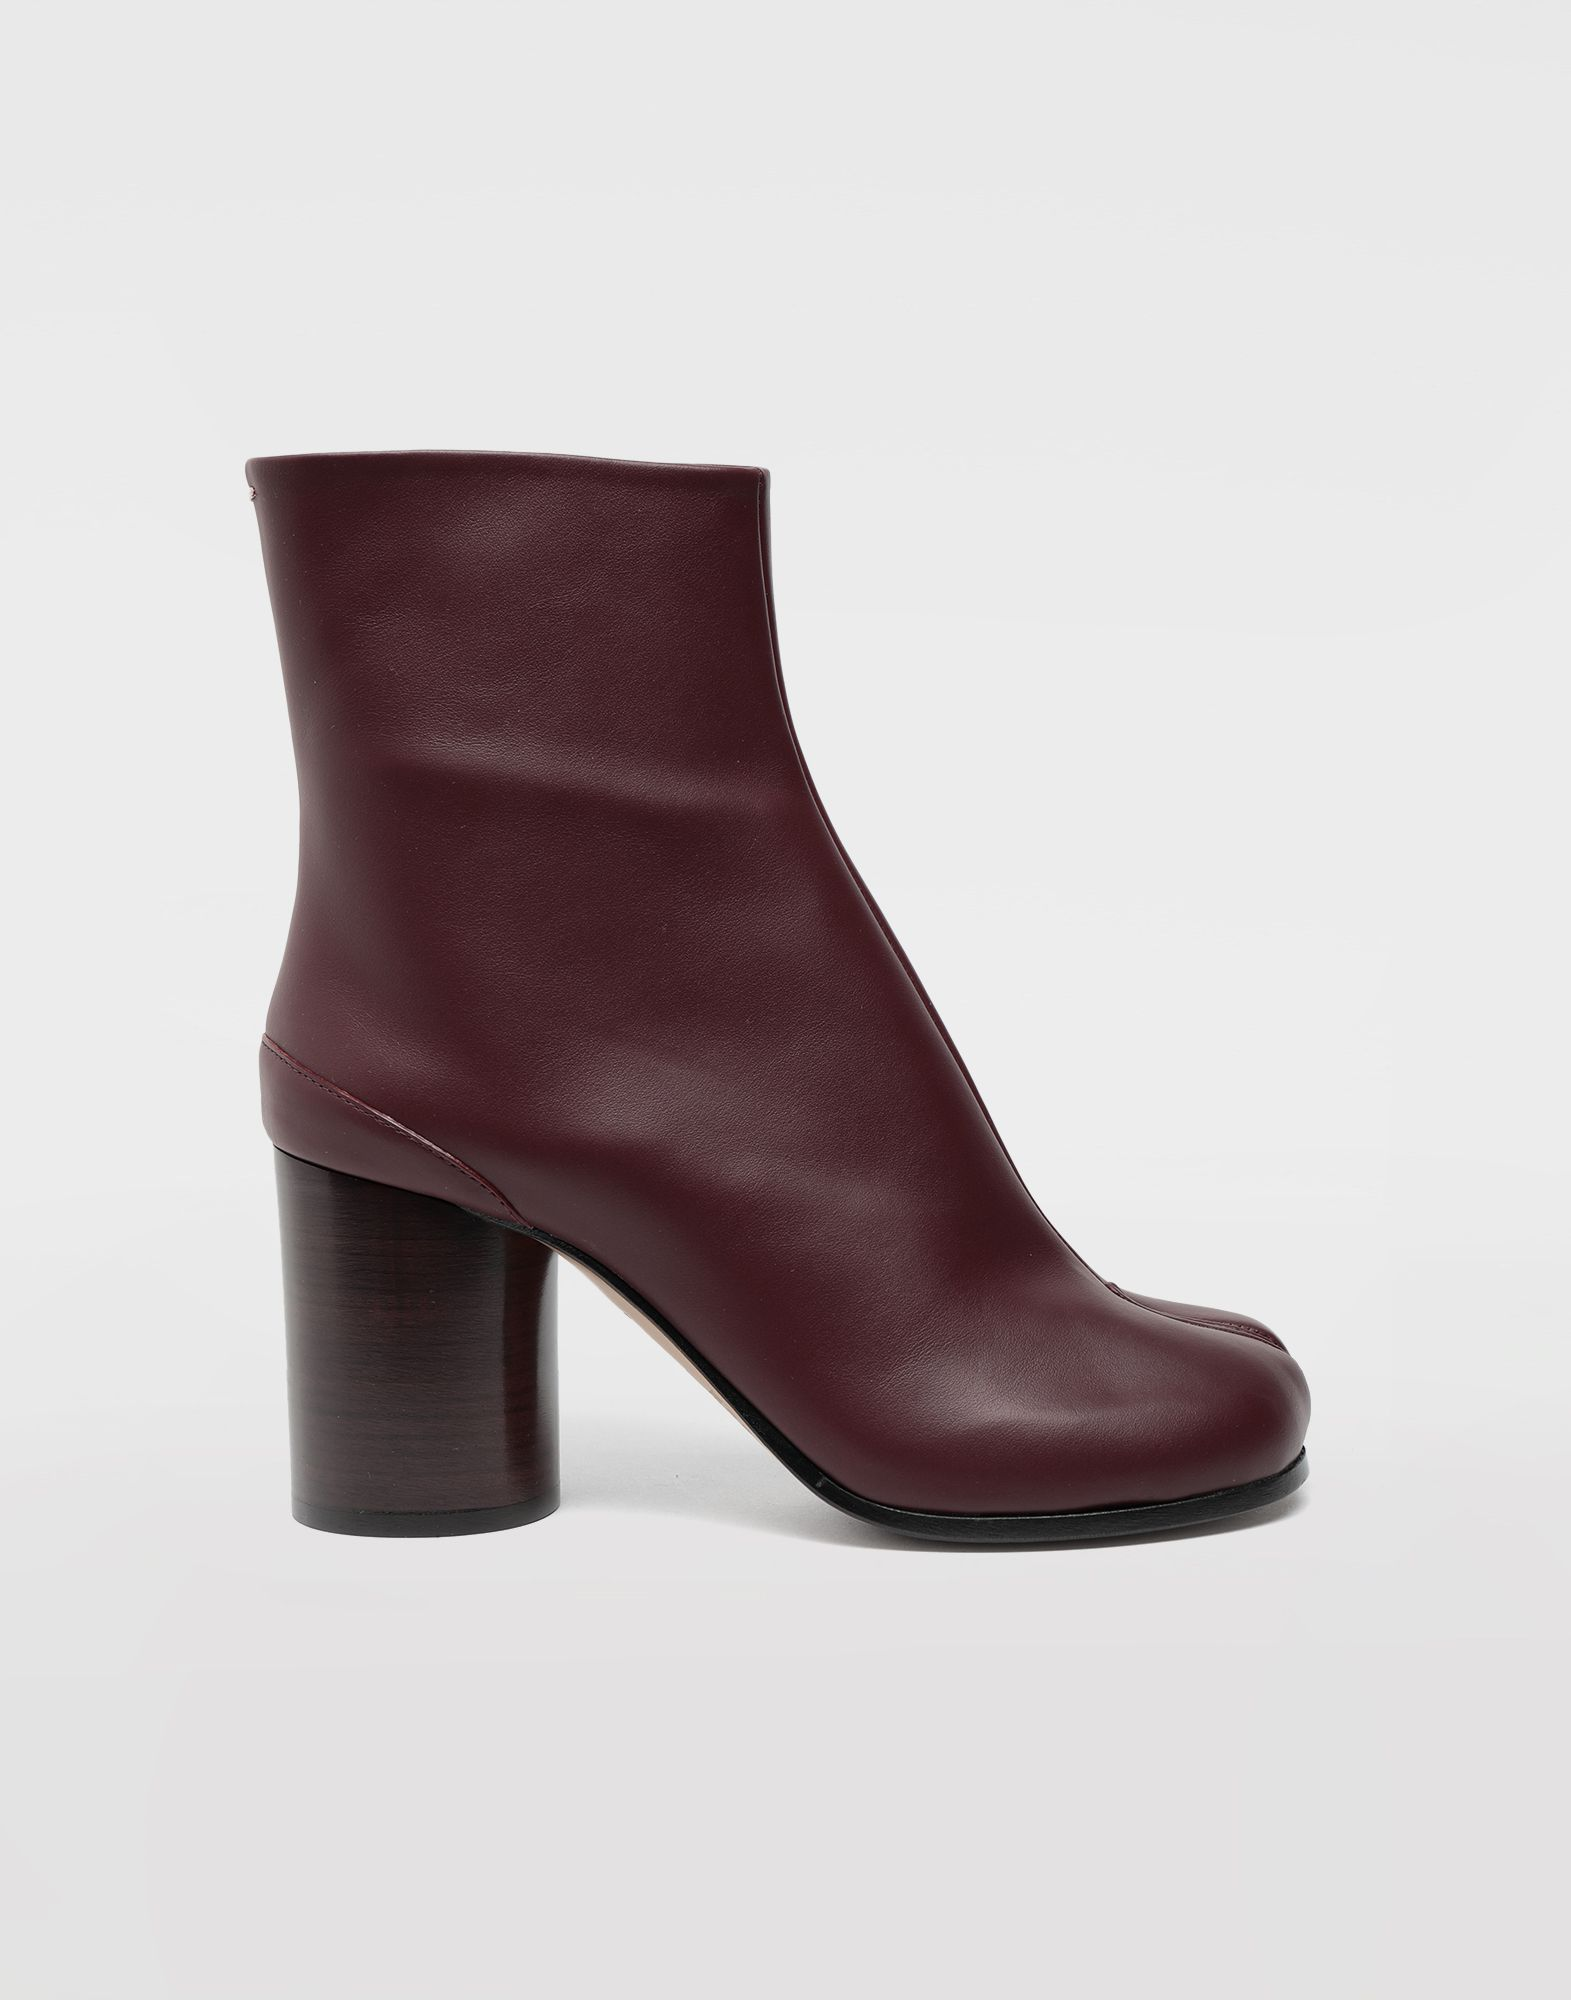 MAISON MARGIELA Stiefel Tabi aus Kalbsleder Ankle Boots Dame f